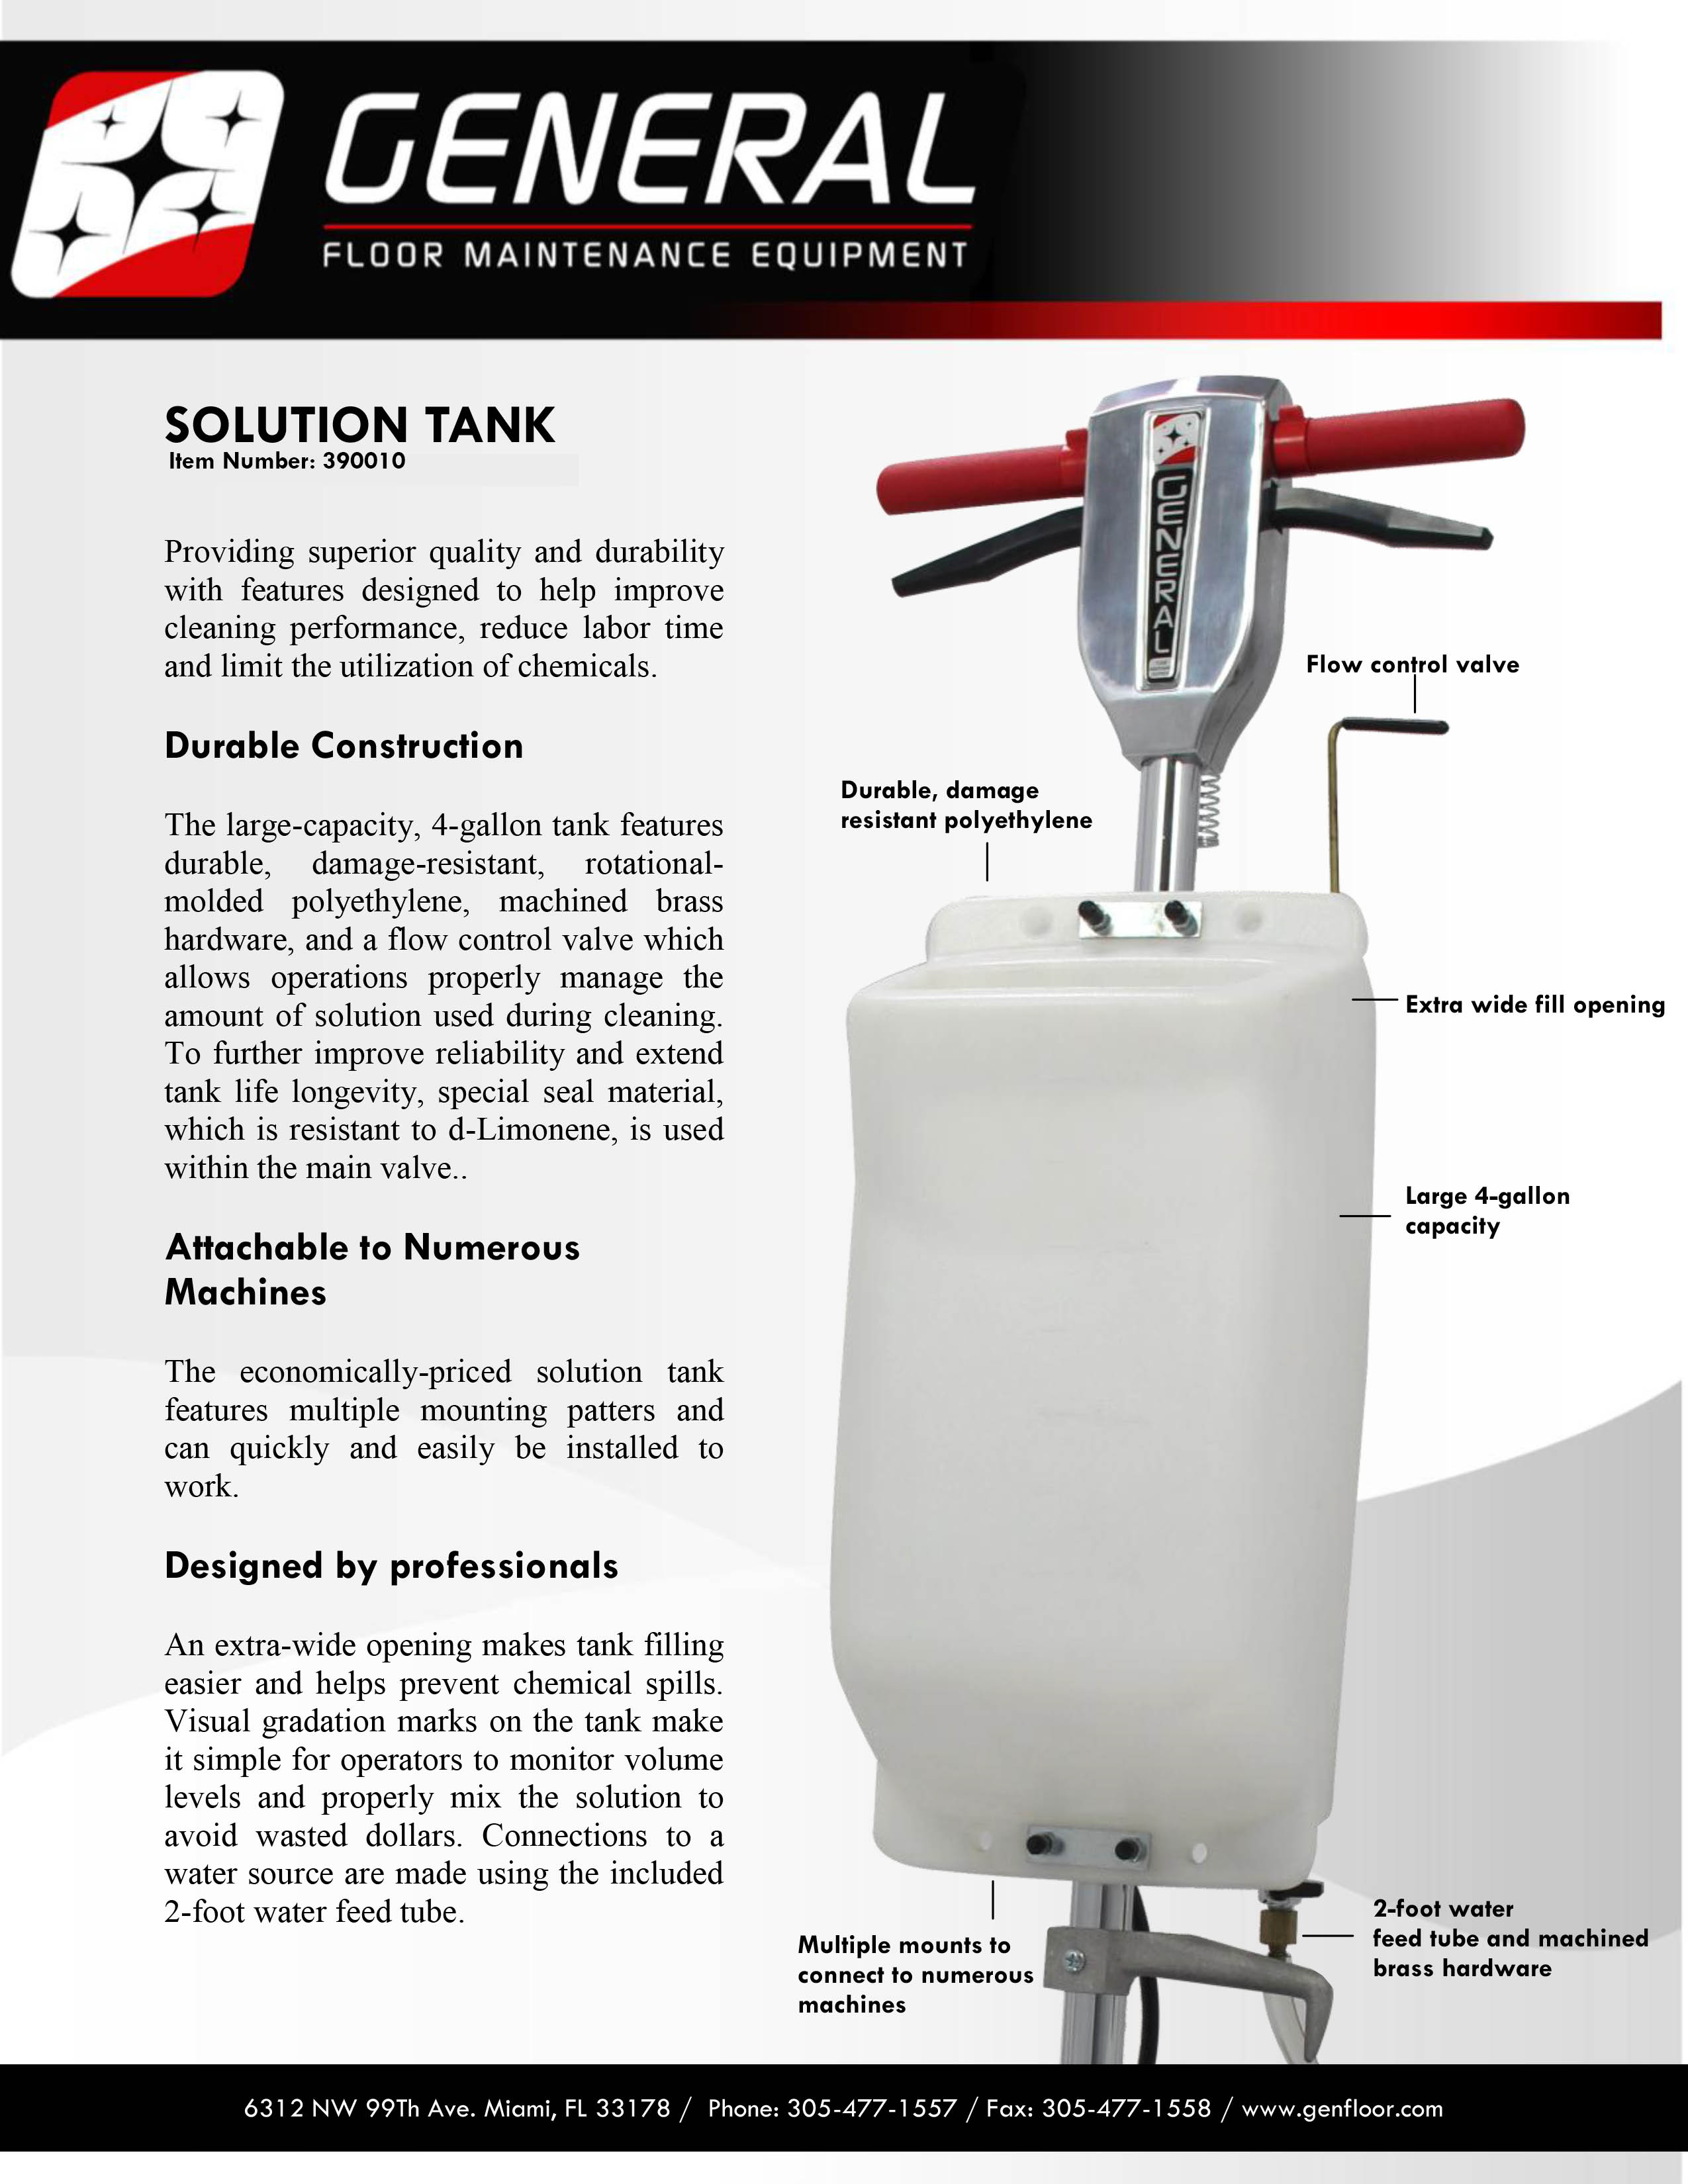 SOLUTION TANKS